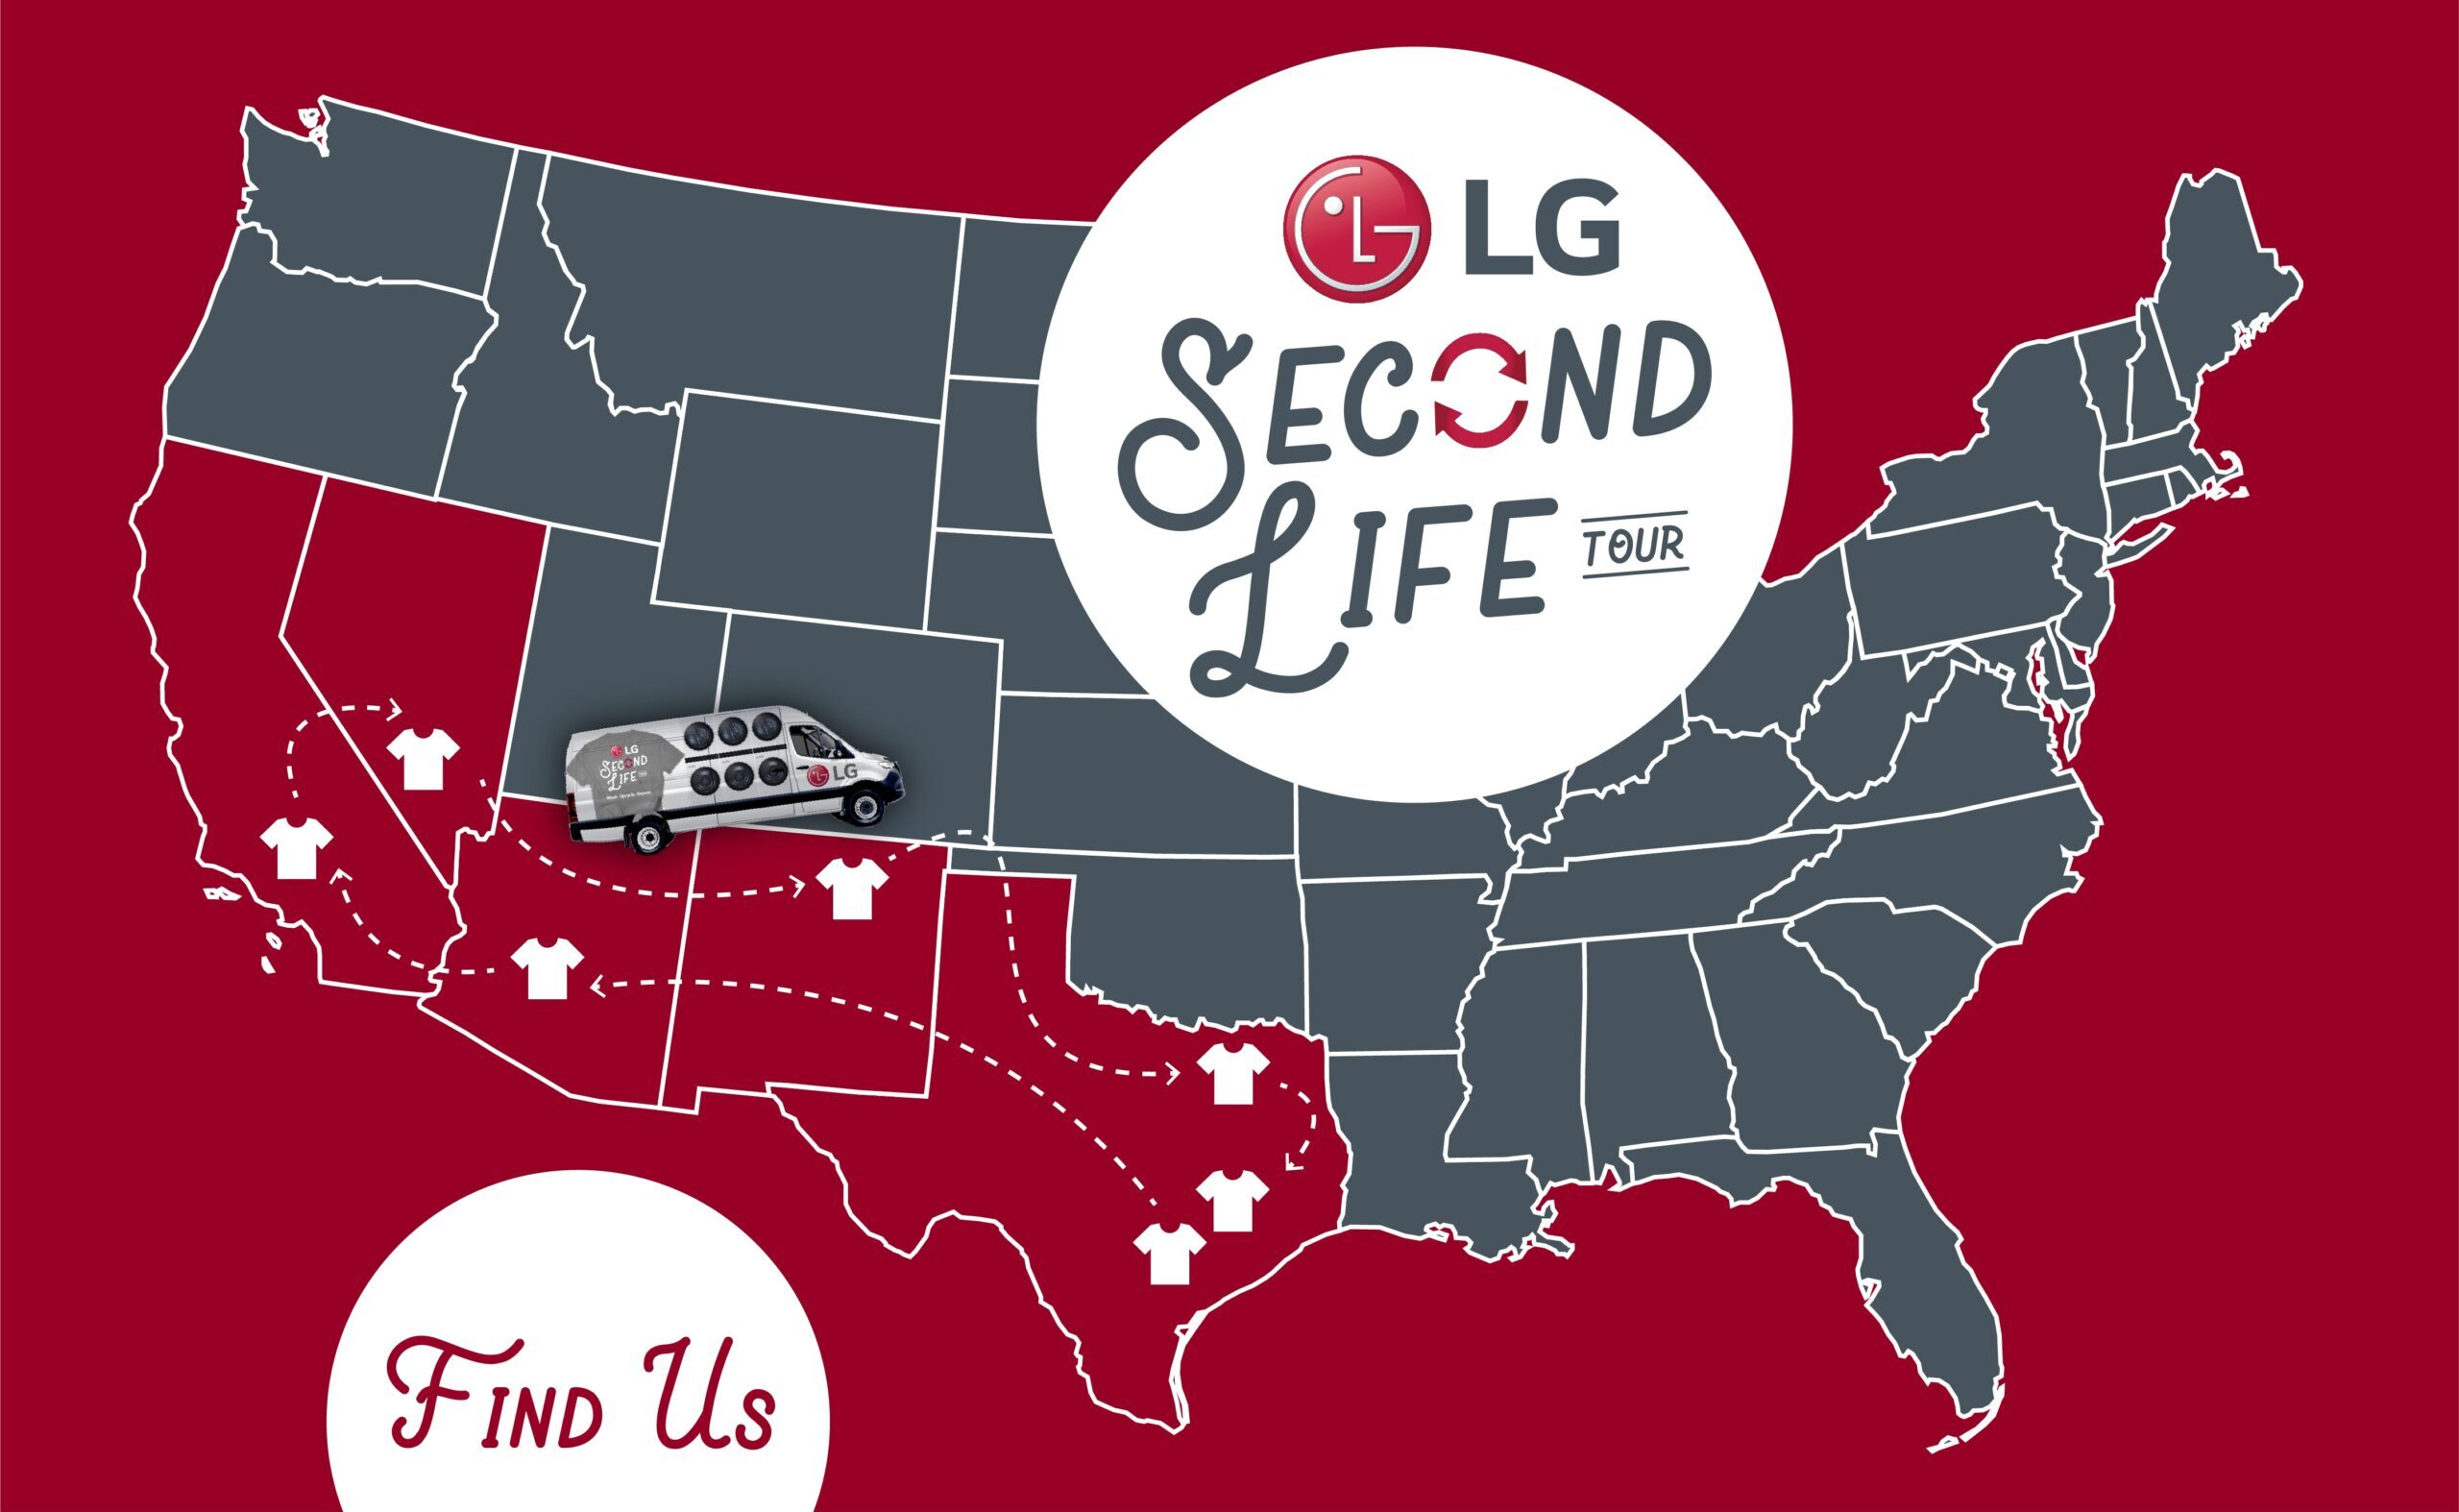 A map of the US showing where The Second Life Campaign tour will be taking place